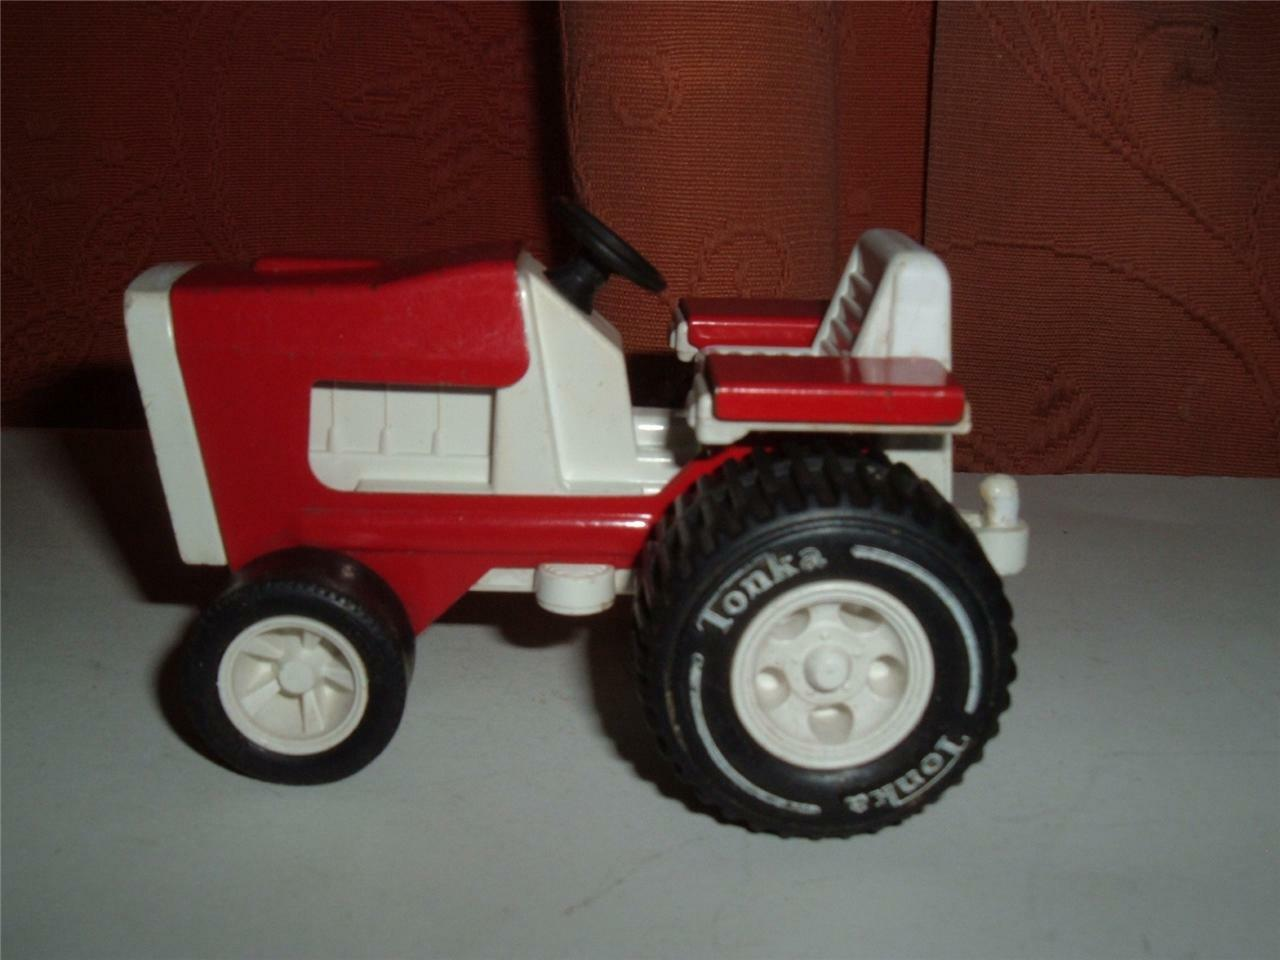 TONKA TOYS FARM TRACTOR PLASTIC TINPLATE VINTAGE USED GO DOWN FOR THE PHOTOS